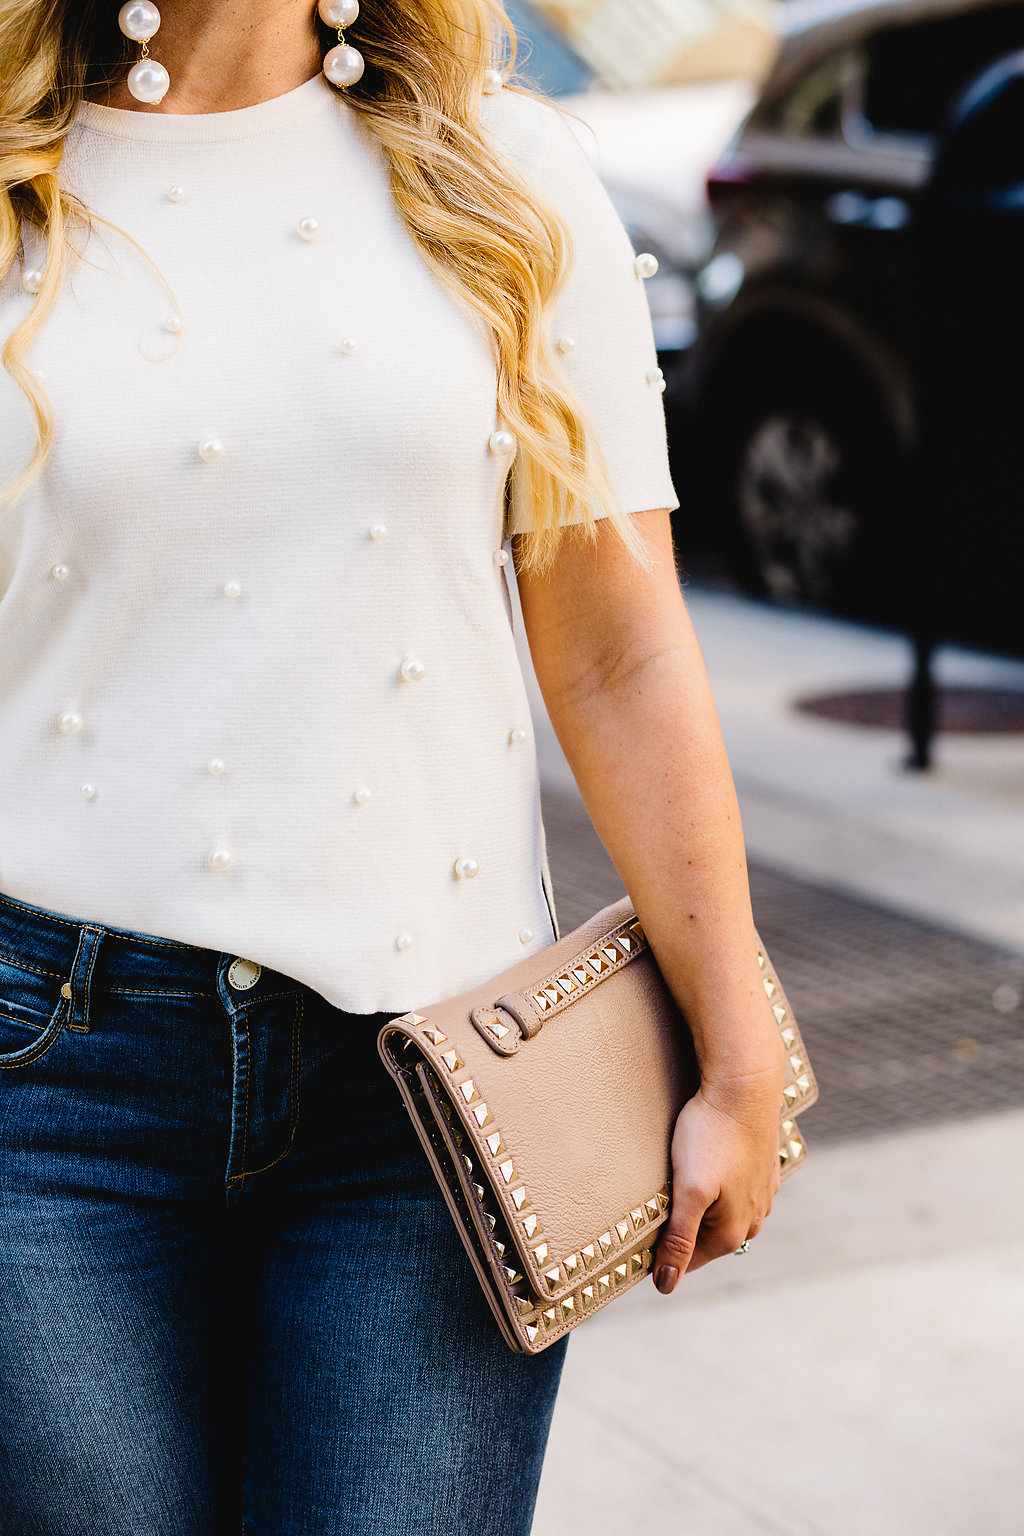 Pearl Embellished Top | The Darling Petite Diva | Fashion Week